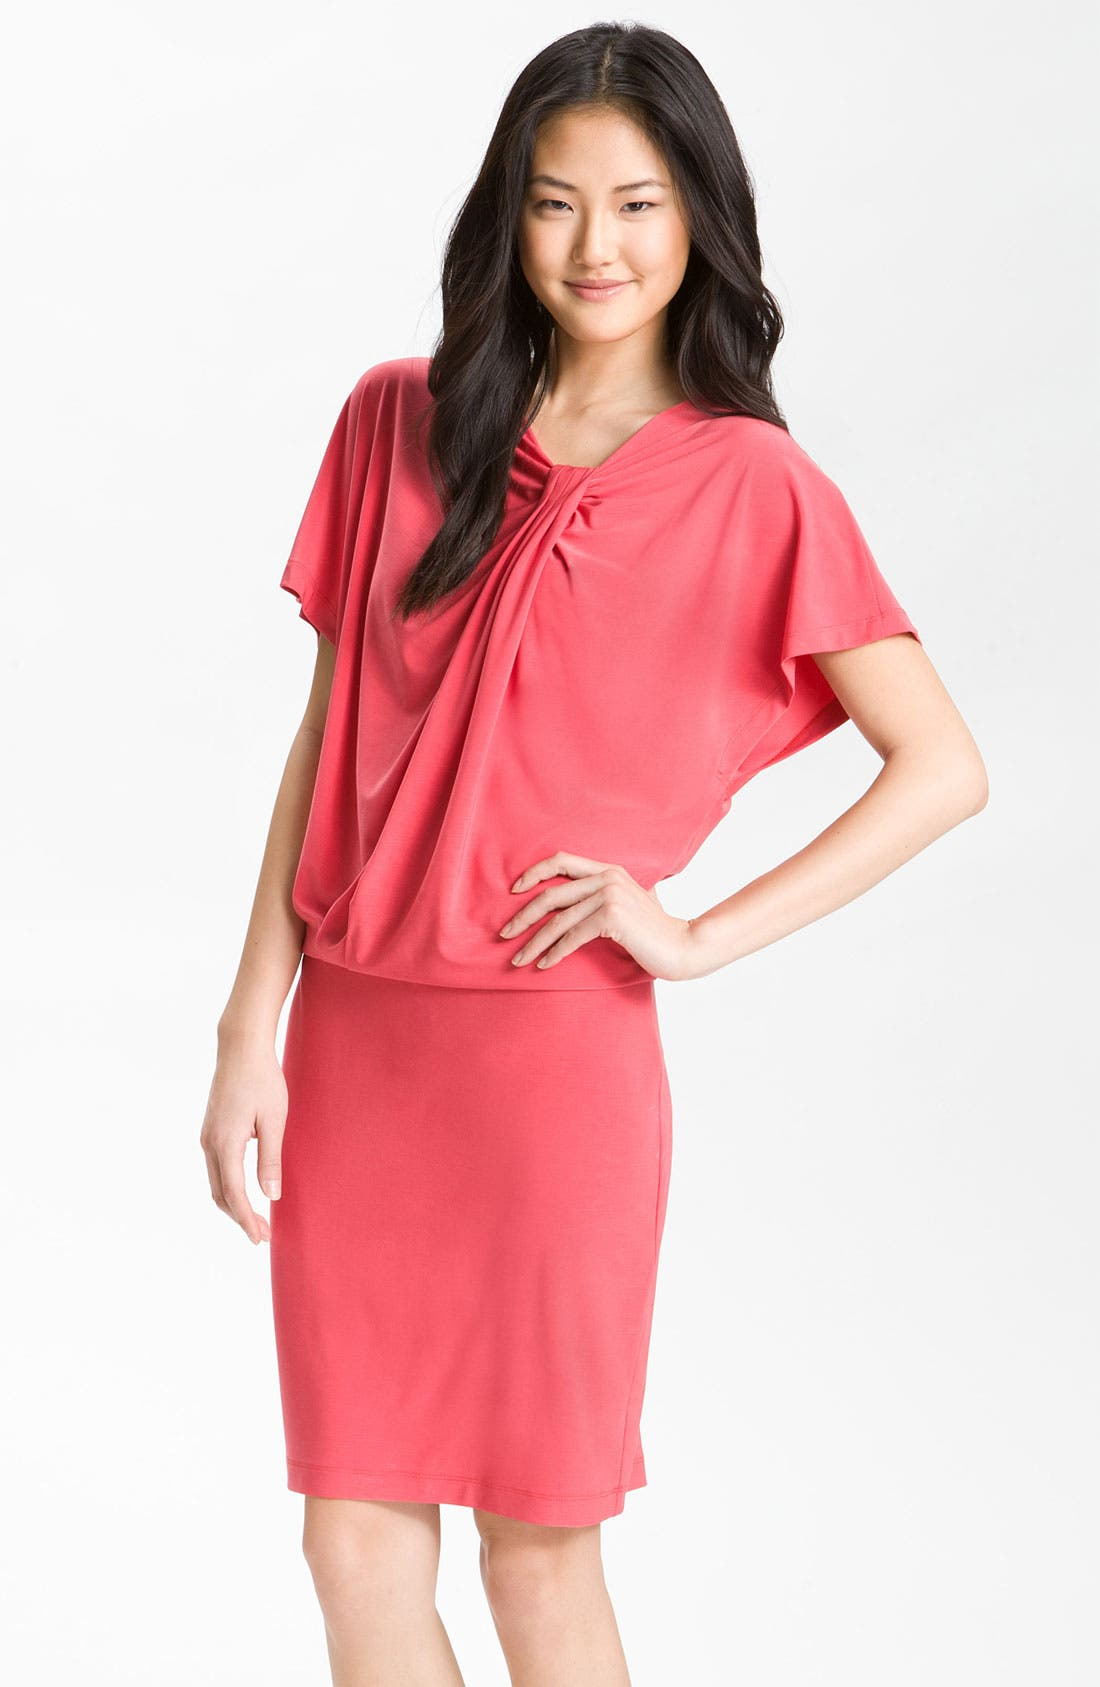 Alternate Image 1 Selected - Alex & Ava Knot Detail Blouson Jersey Dress